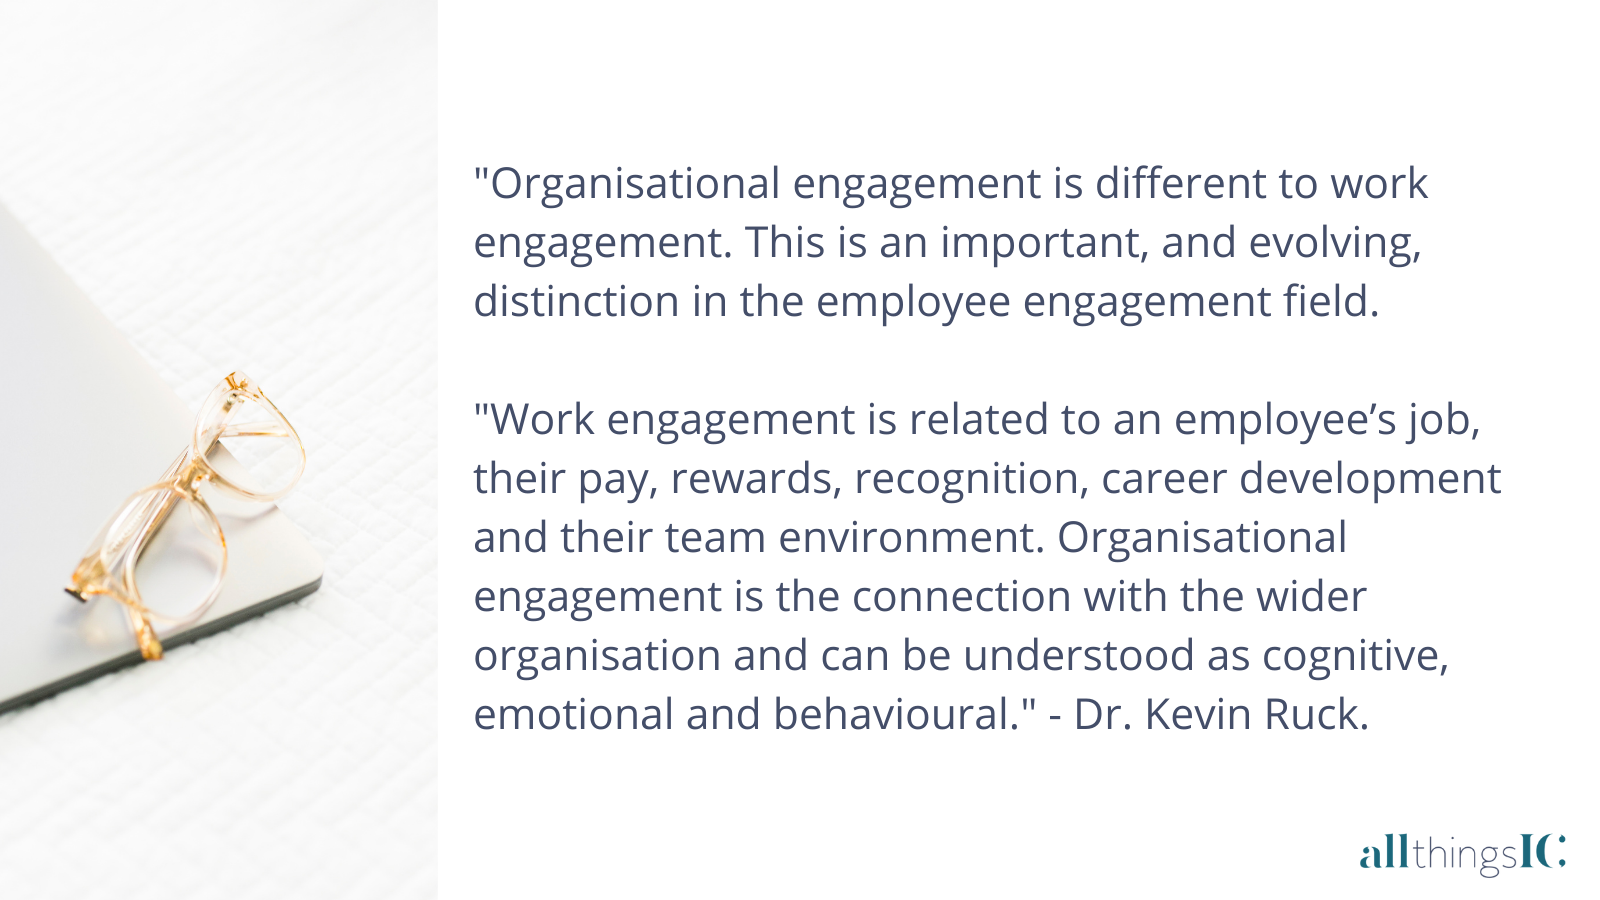 Role engagement and organisational engagement